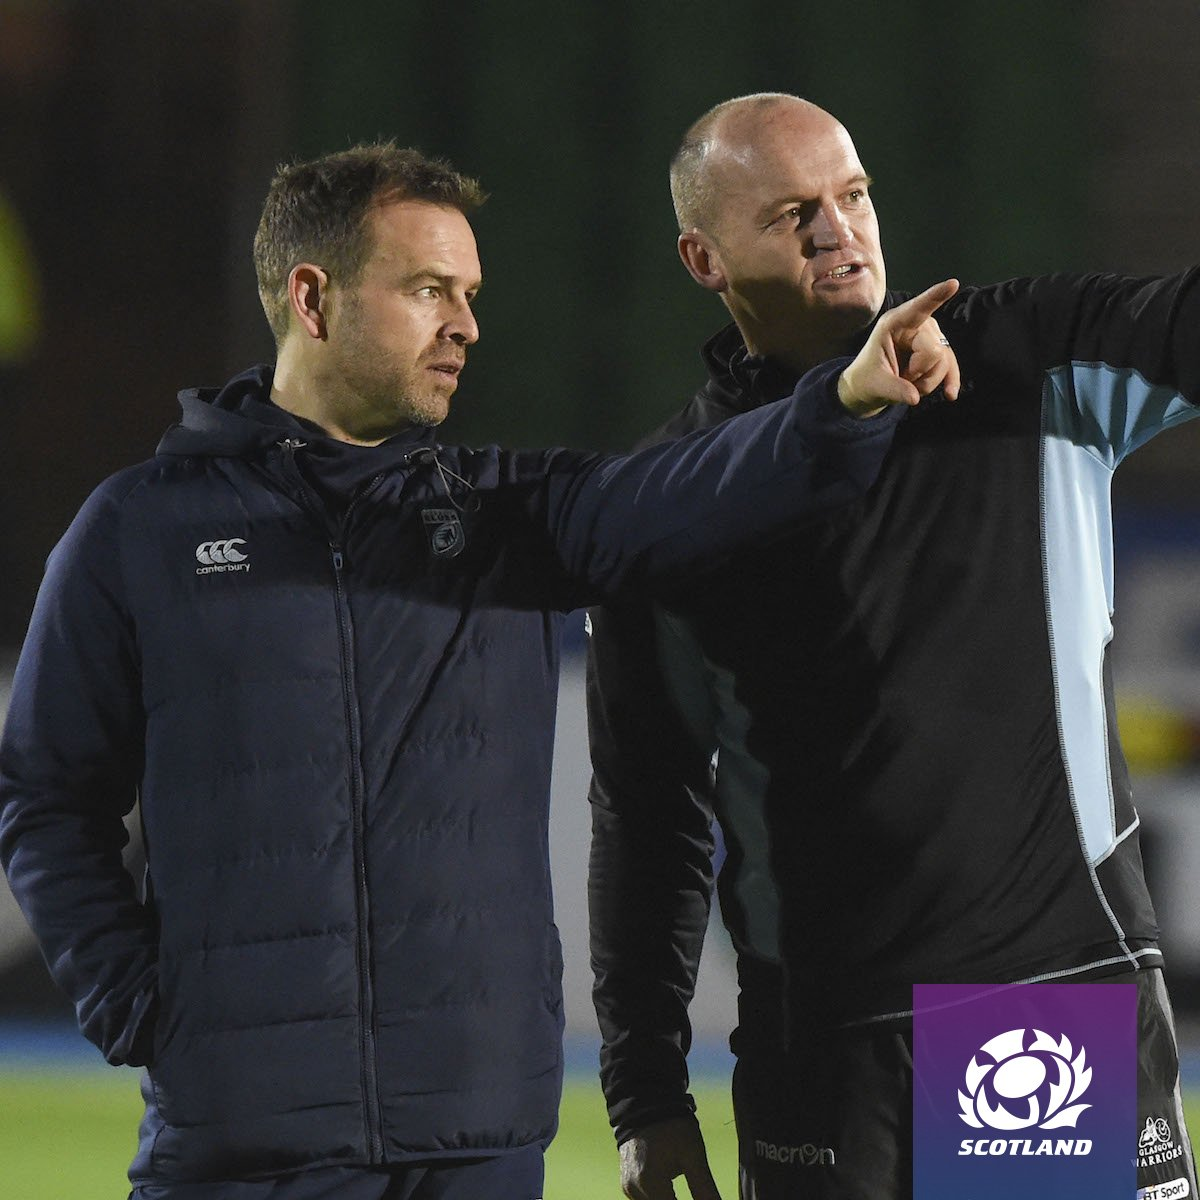 CONFIRMED   Scottish Rugby is pleased to confirm Danny Wilson will join the Scotland national team as Assistant Coach (forwards) this August. Wilson will replace Dan McFarland, who is set to join PRO14 side Ulster in January.  ➡️ https://t.co/sy3vy4TKMQ